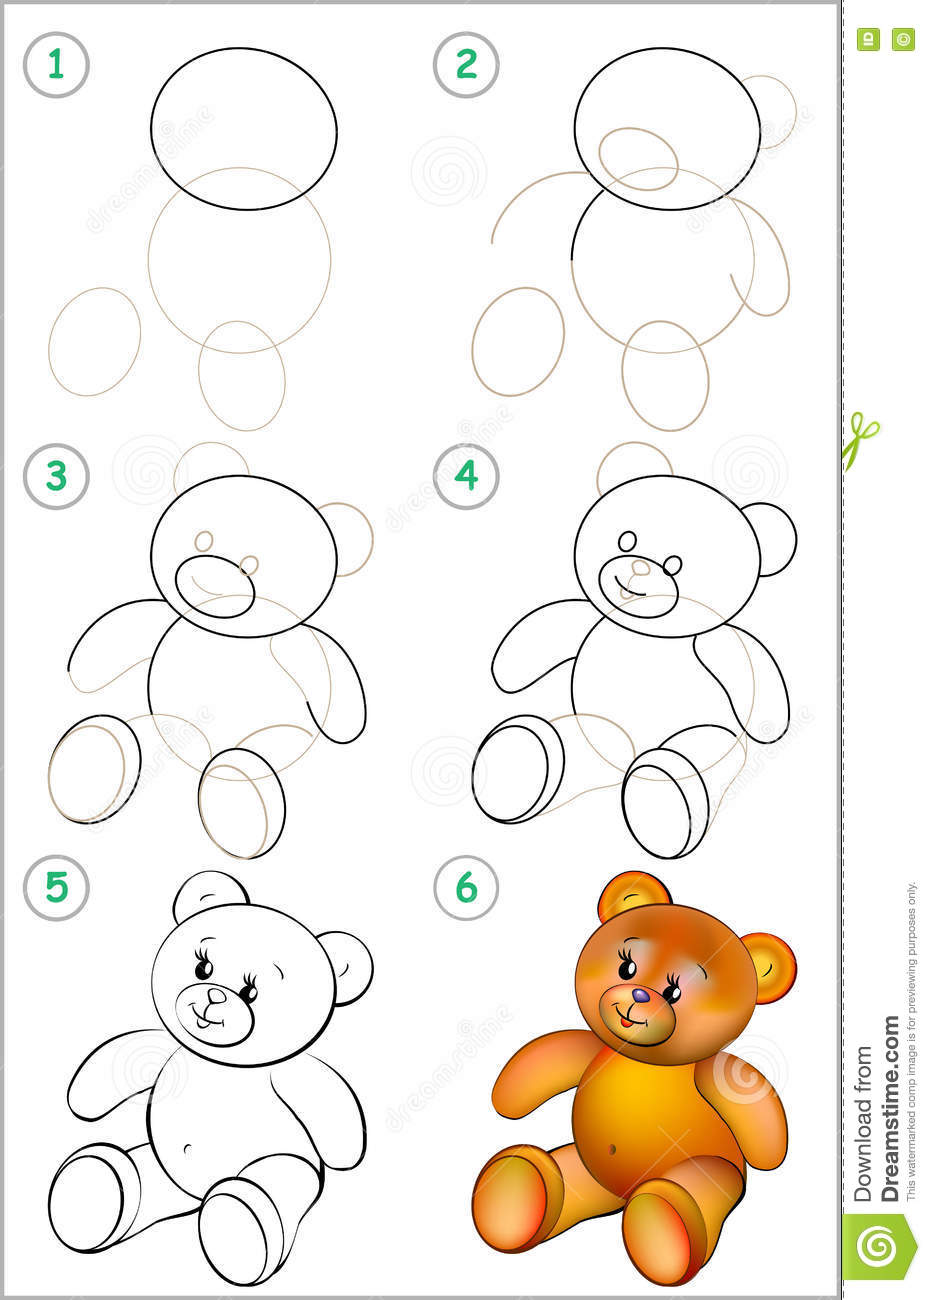 Page Shows How To Learn Step By Step To Draw A Teddy Bear Stock